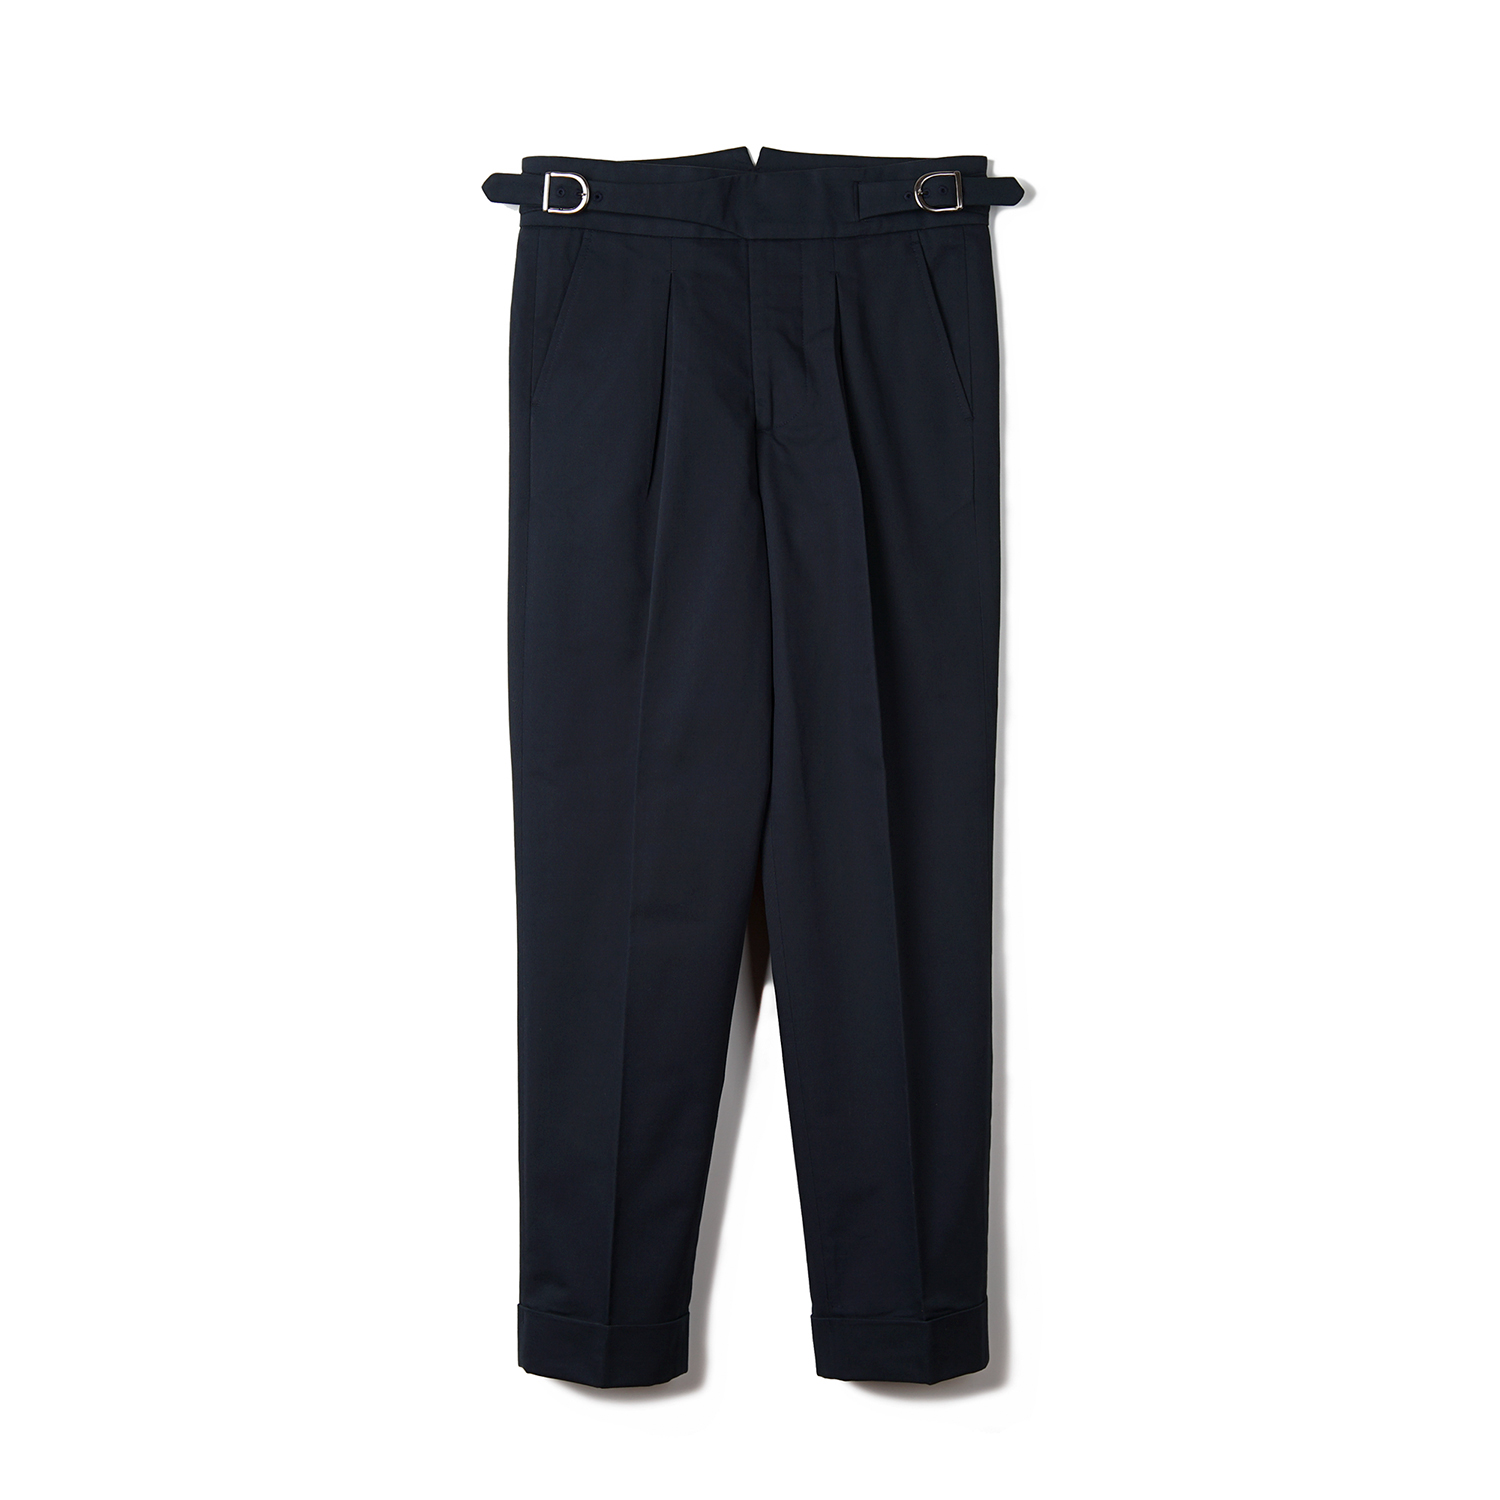 BTS Cotton Gurkha Pants - Navy